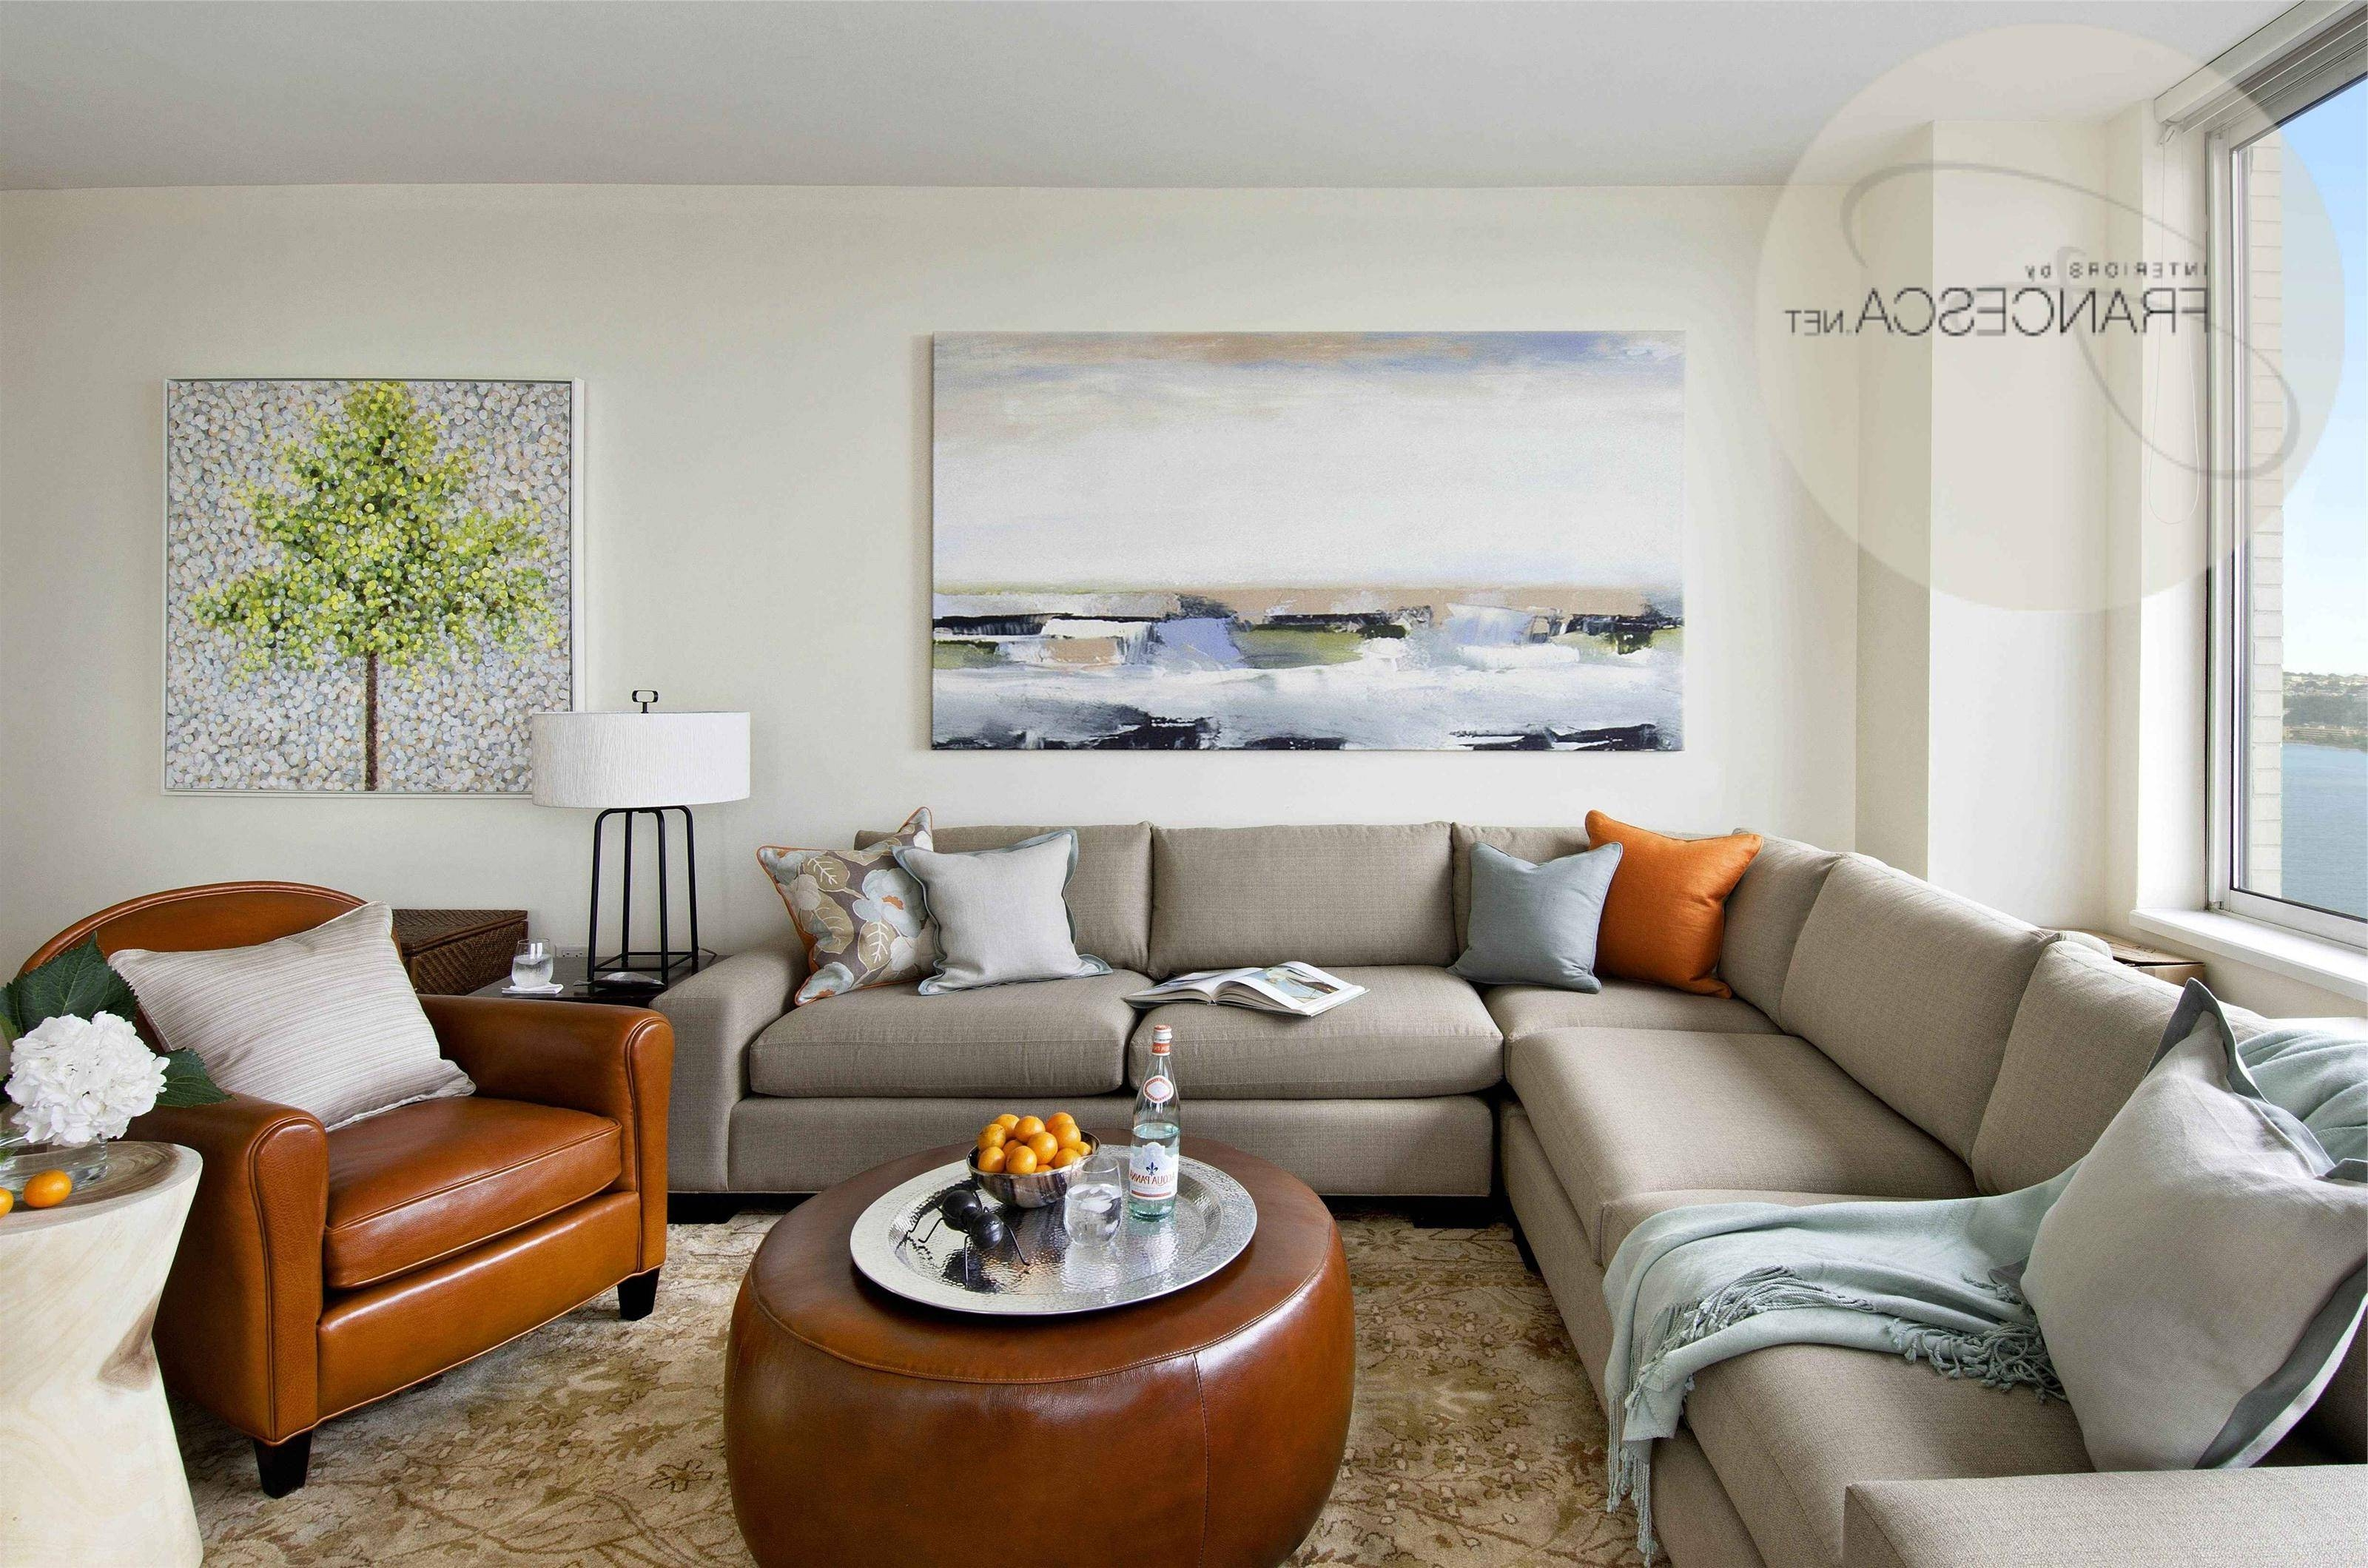 Fancy Curved Sectional Sofa With Thick Backres Casual Living Room pertaining to Decorating With a Sectional Sofa (Image 19 of 30)